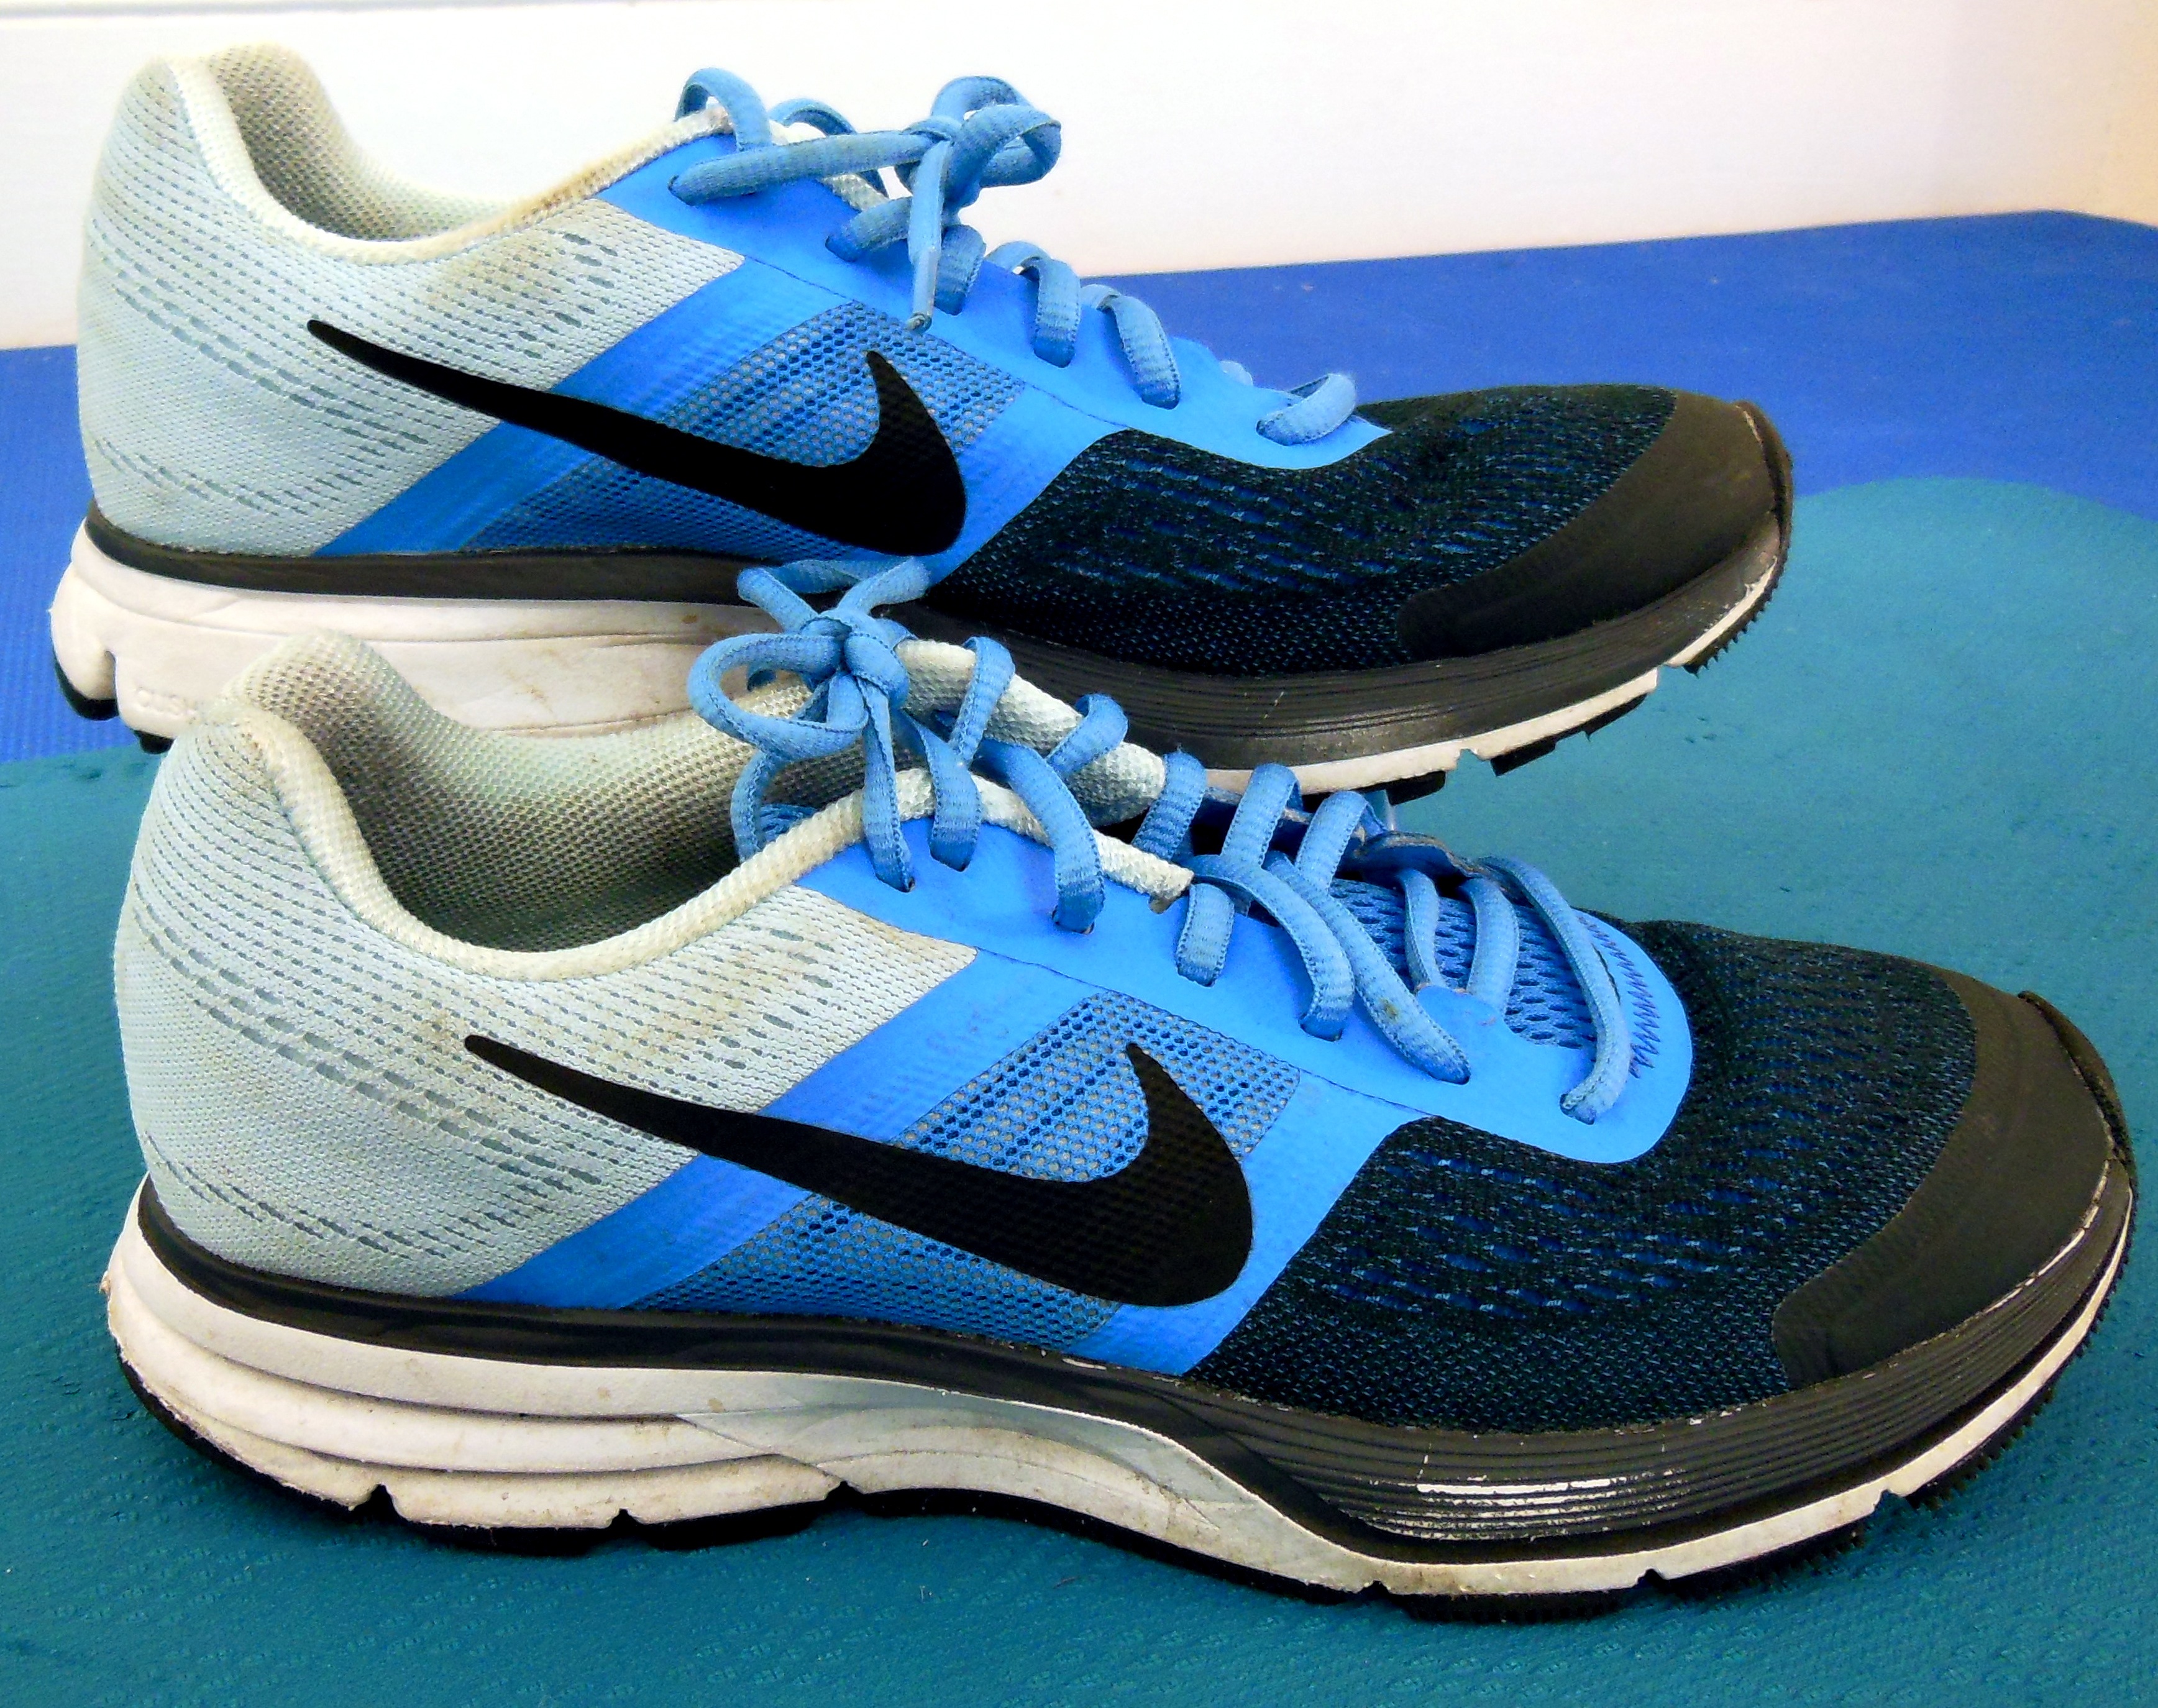 Should I Buy My Running Shoes A Size Bigger